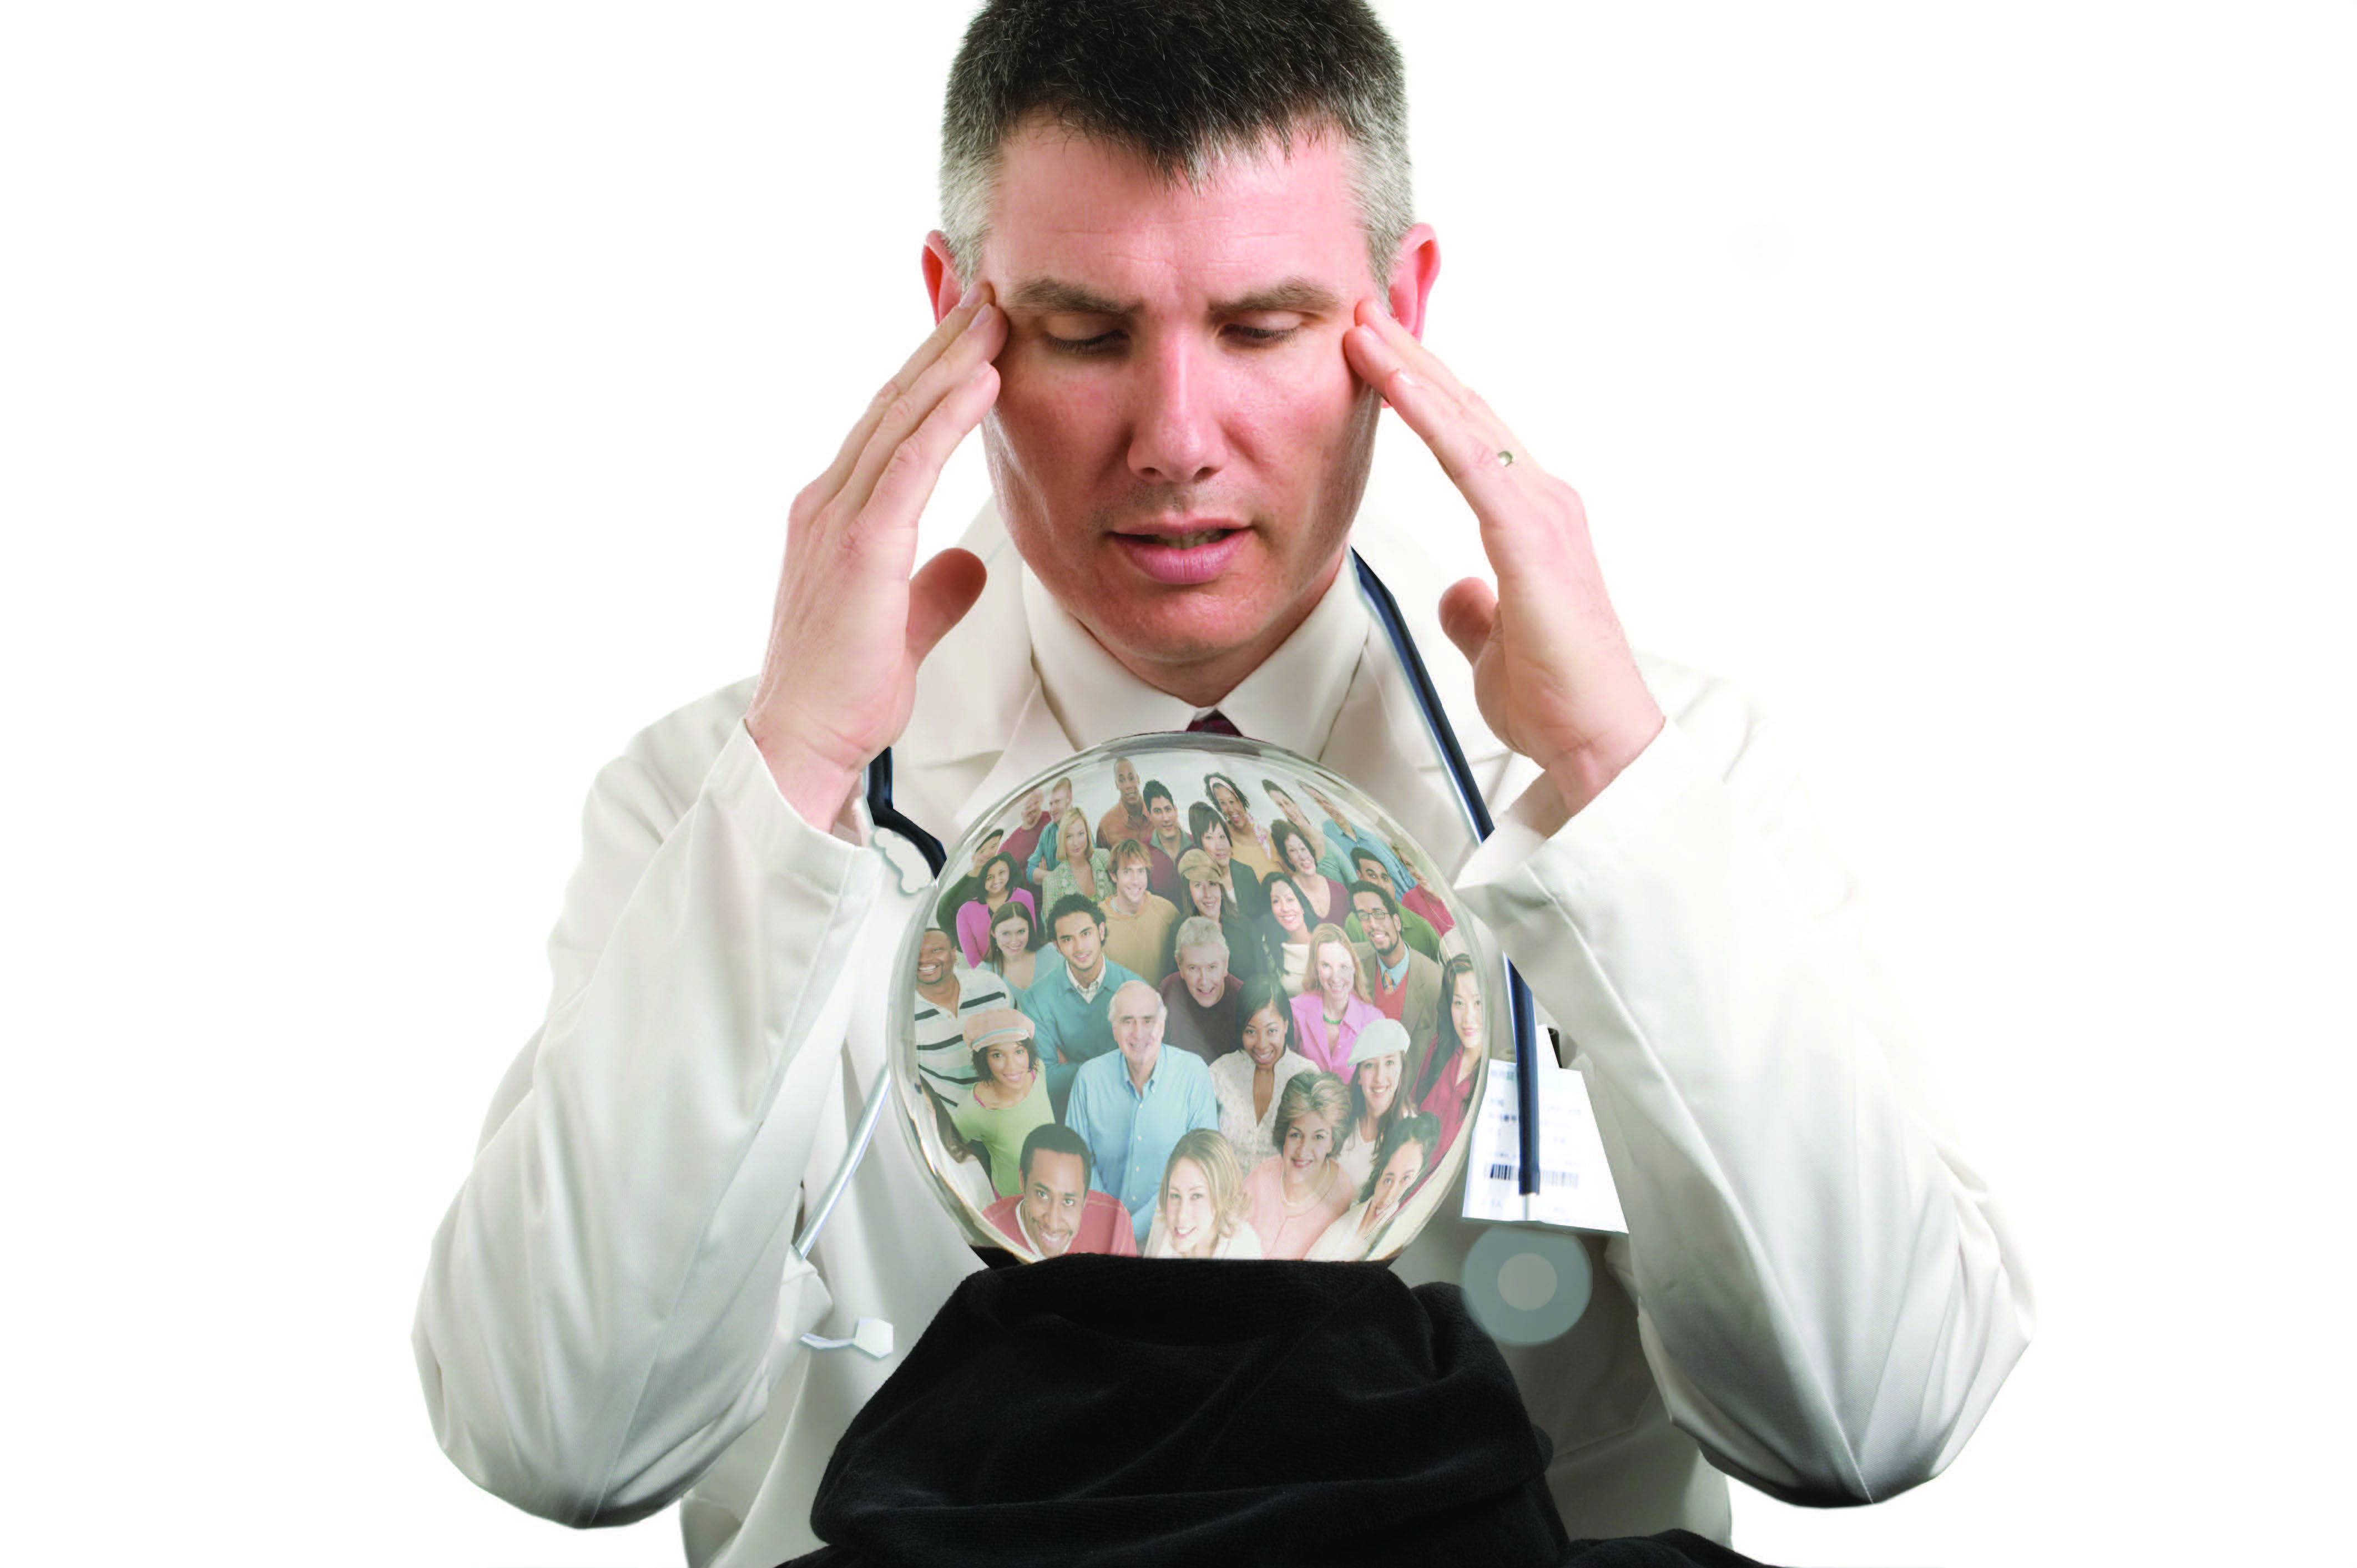 doctor looking into a crystal ball filled with people